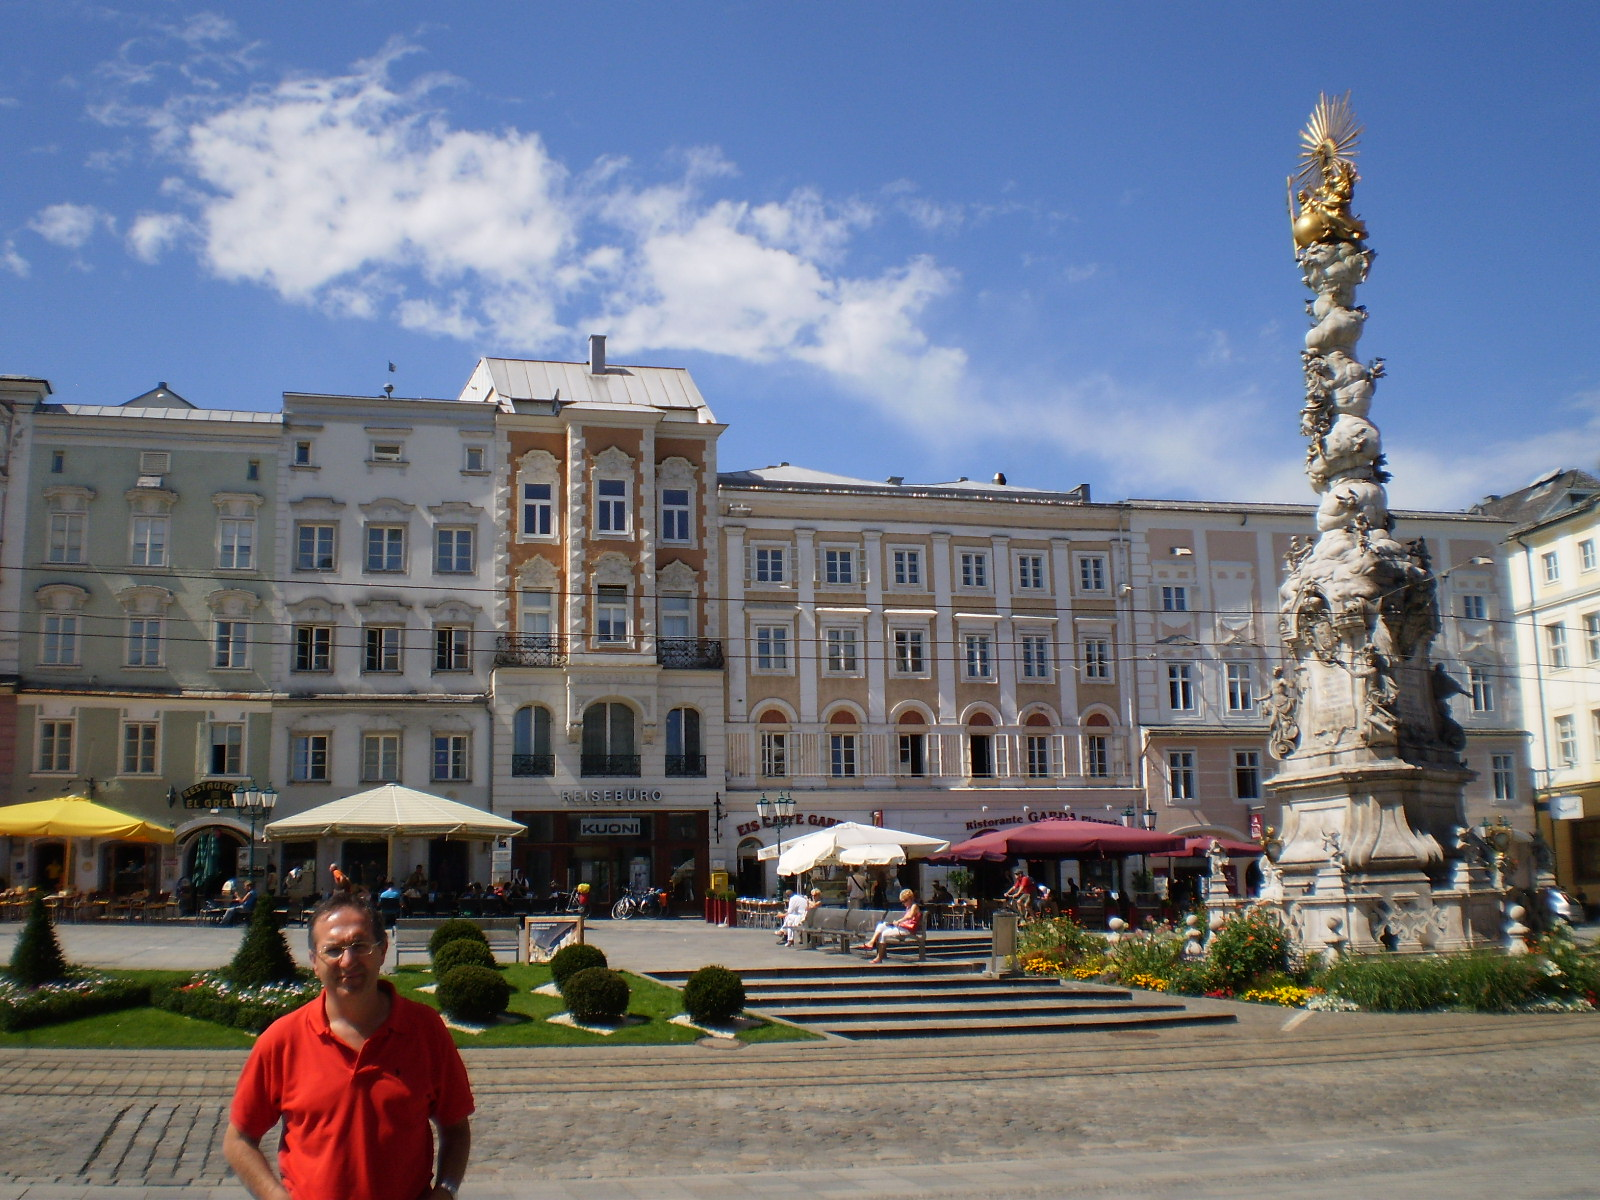 Linz Austria Pictures and videos and news